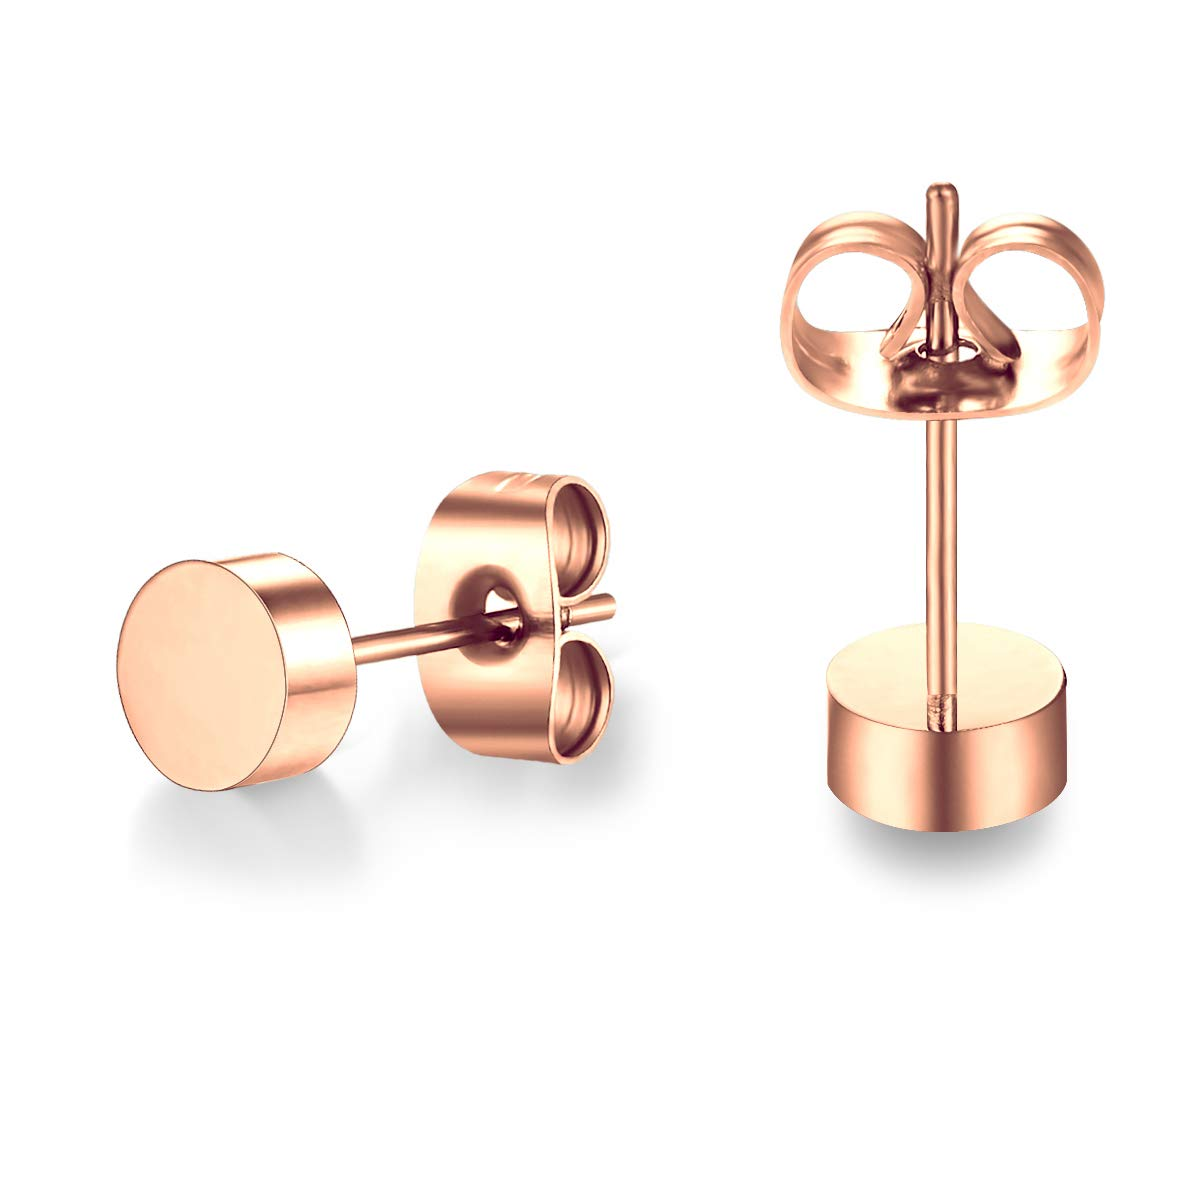 My-jewellery Stainless steel rose gold plated and copper Cufflink